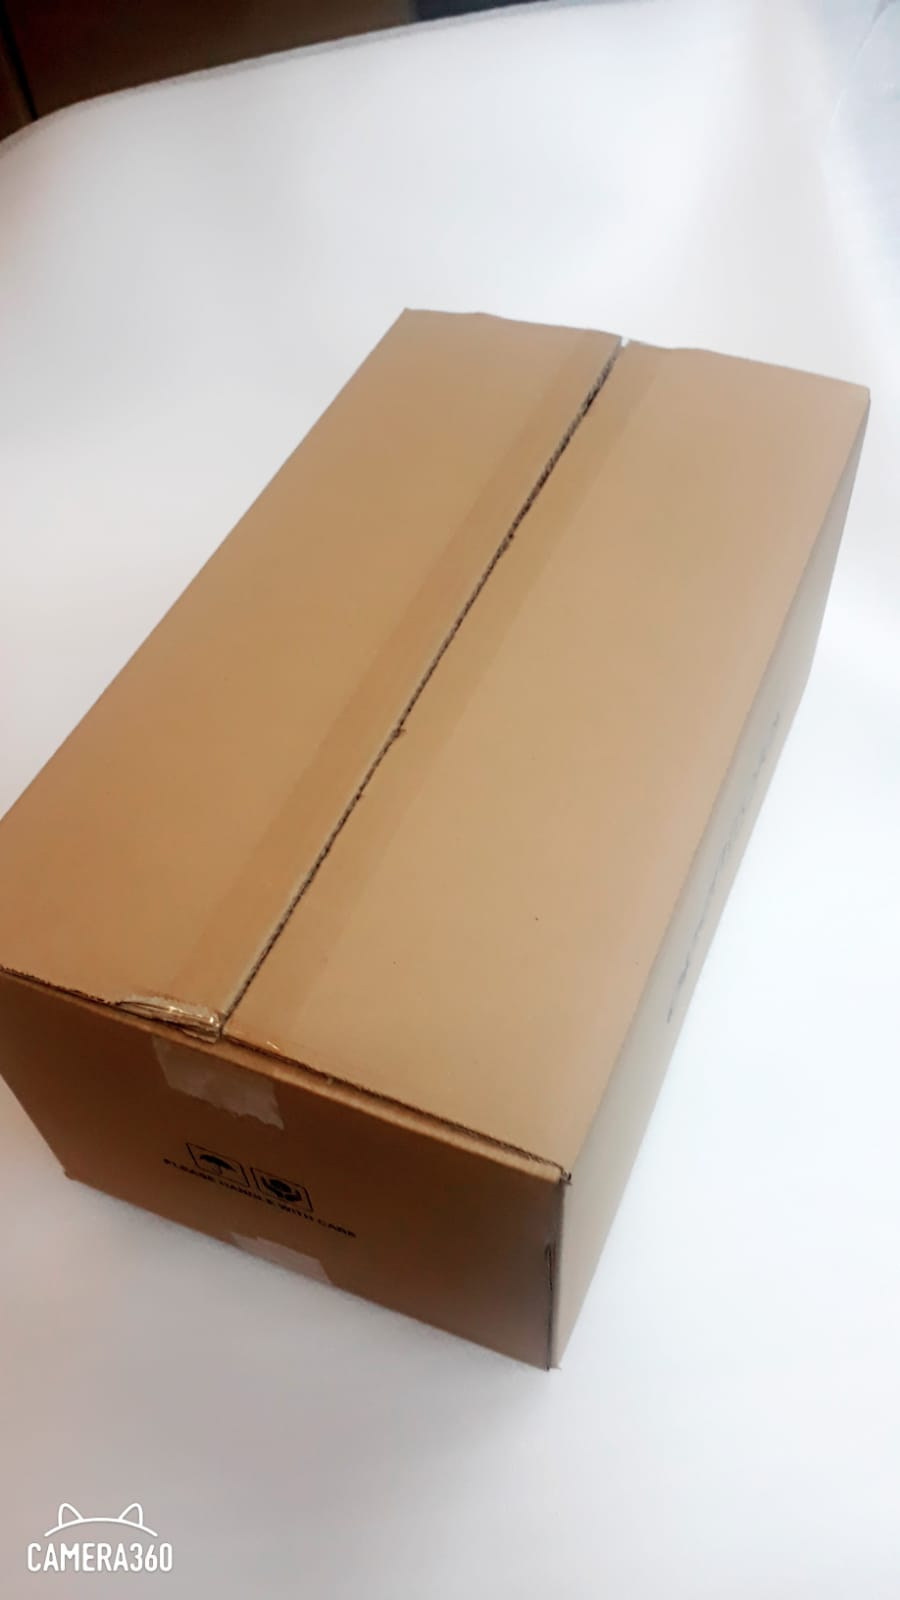 New Document Logo Printed Box - CartonBox.Sg